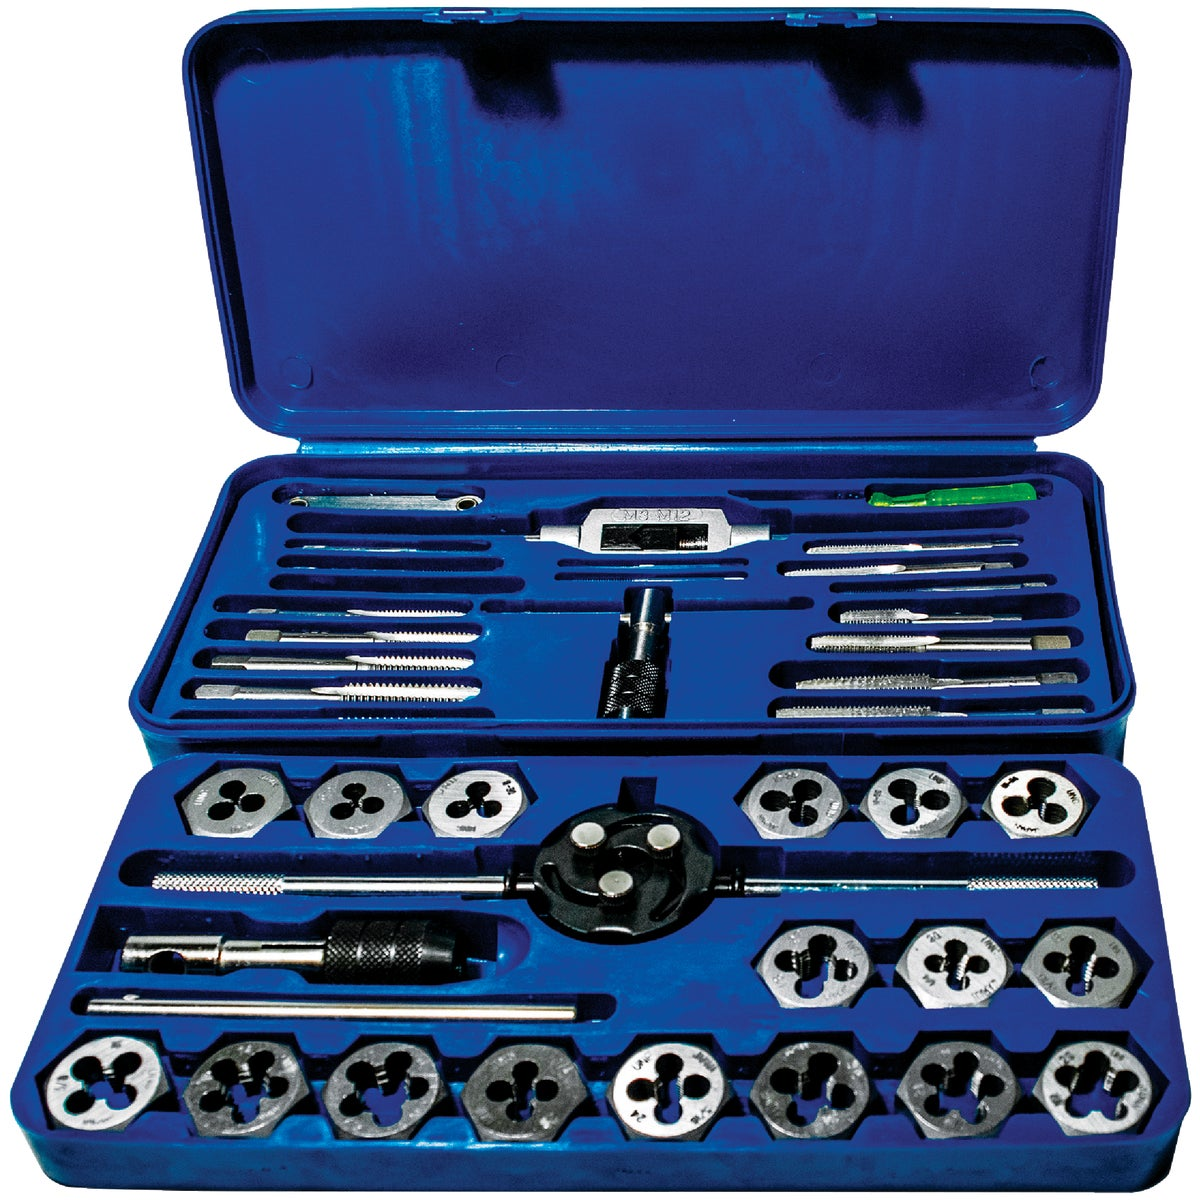 41PC TAP & DIE - 24606 by Irwin Industr Tool